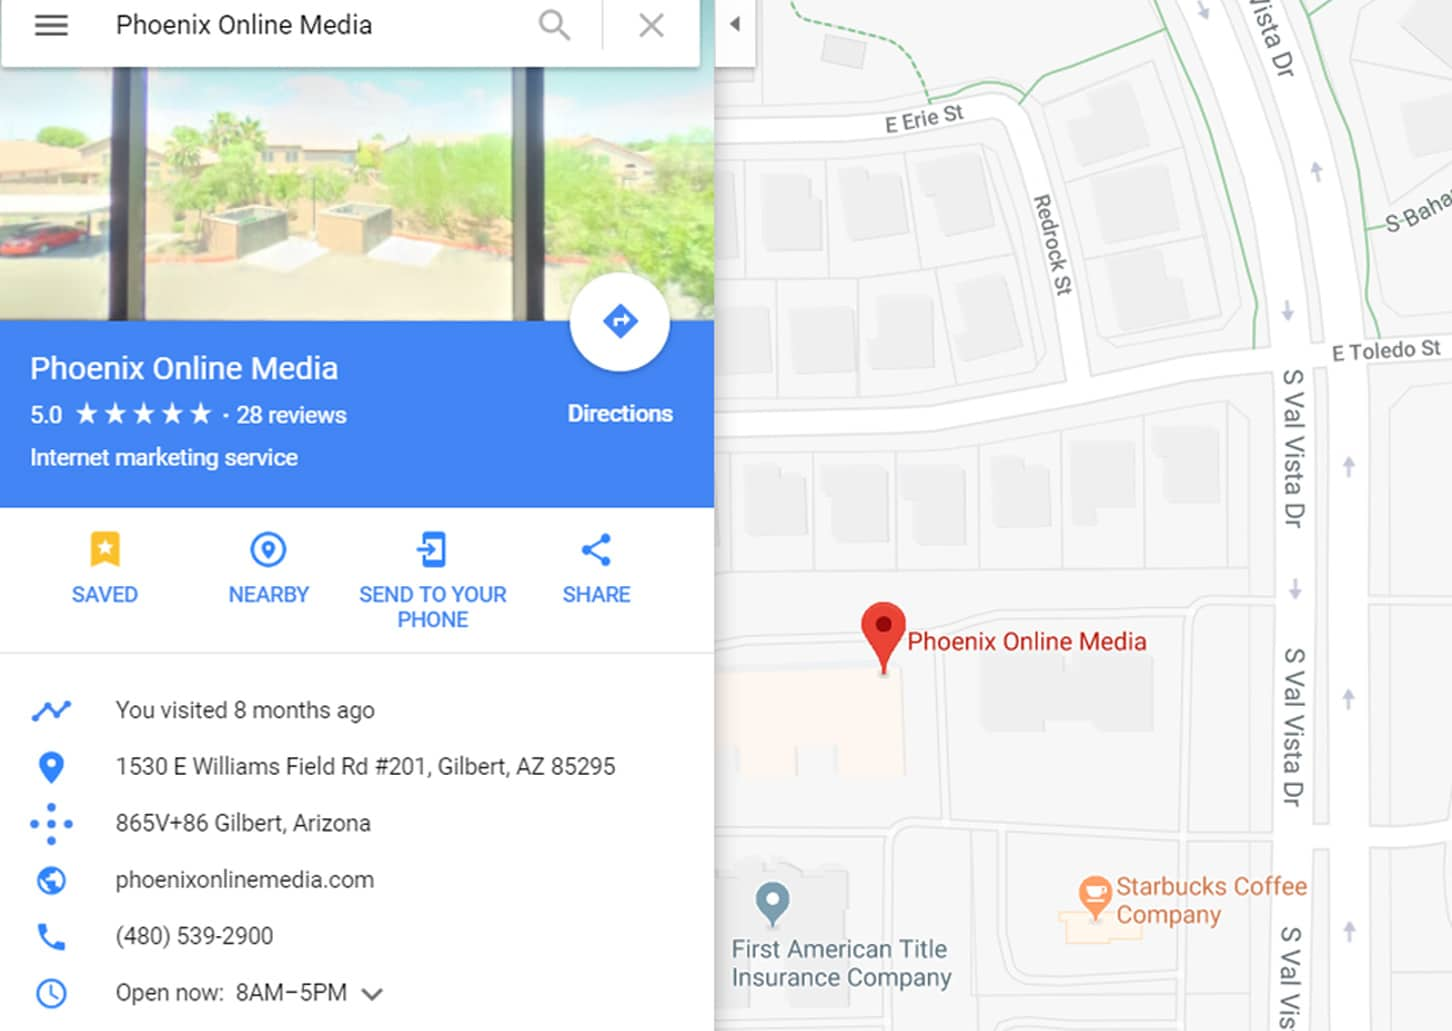 An example of a business on Google Maps using ours as an example.